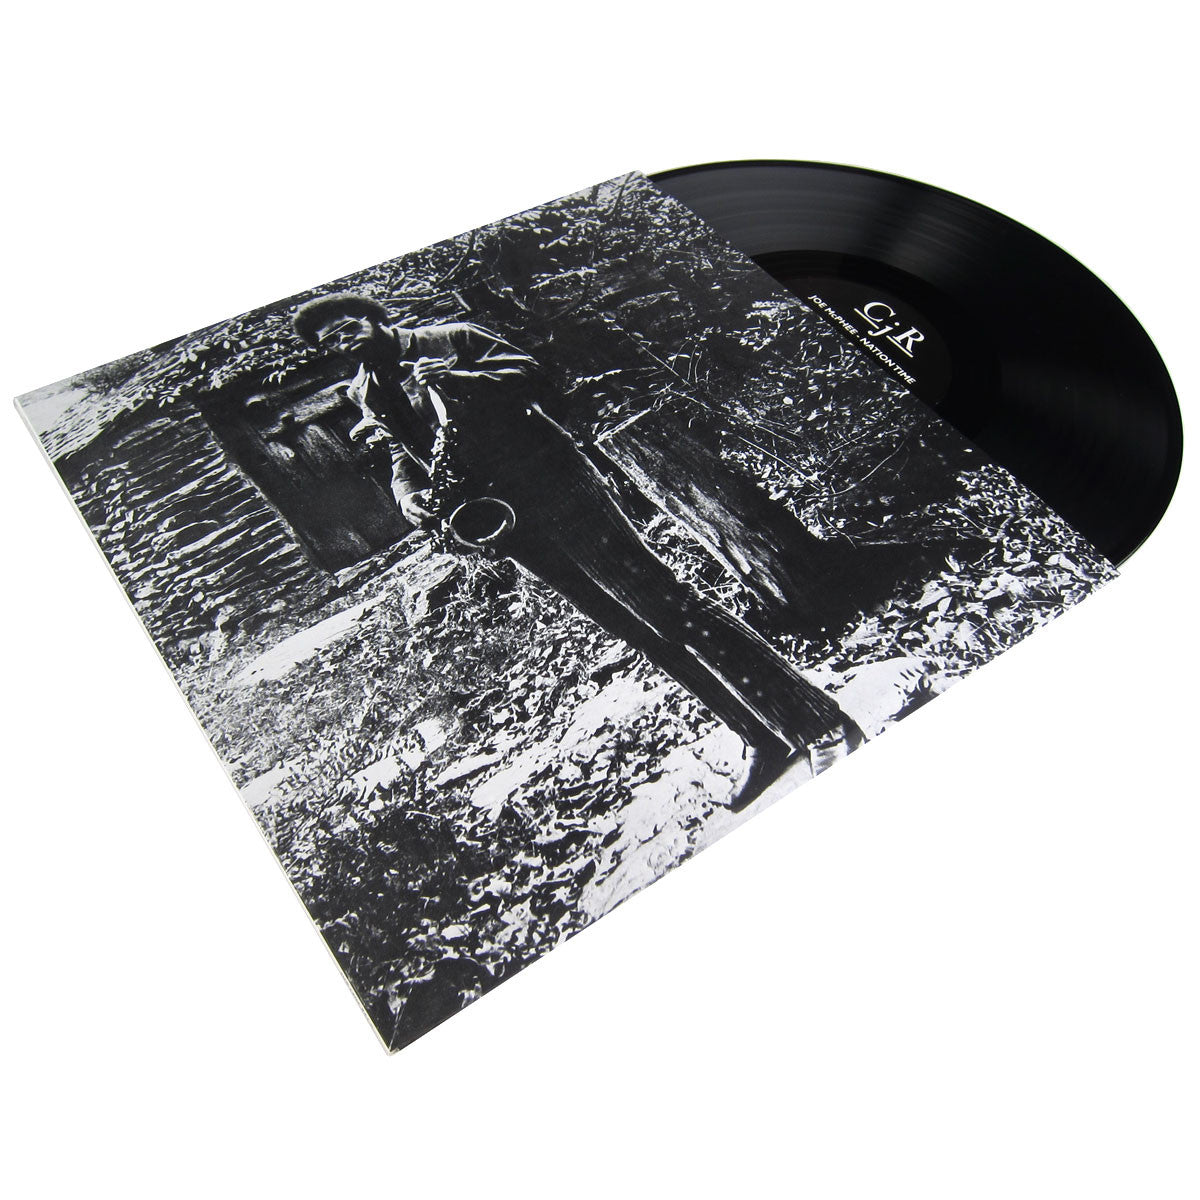 Joe McPhee: Nation Time Vinyl LP